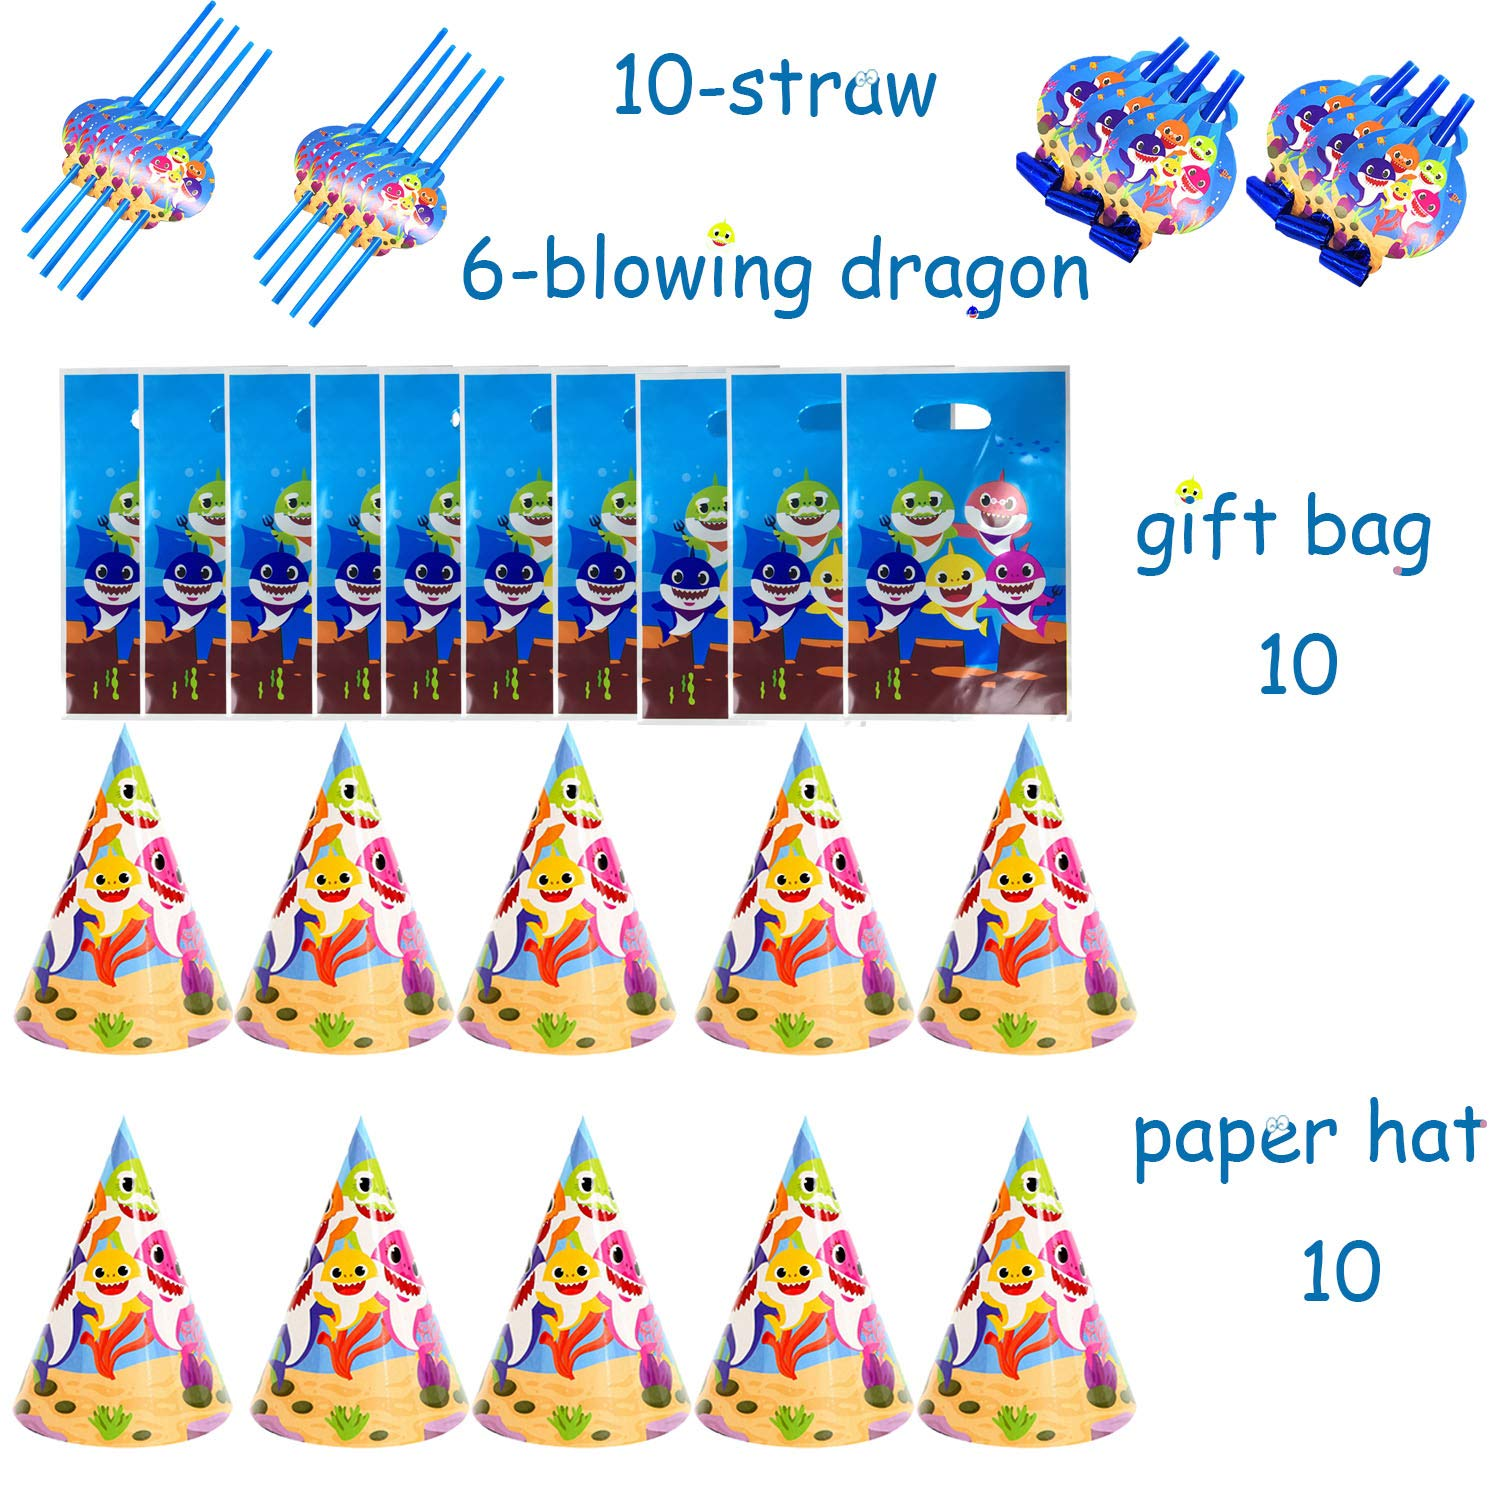 Baby Shark Party Supplies Set - 109 Pcs Baby Shark Themed Birthday Decorations Includes Disposable Tableware Kit Blowing Dragon Paper Hat Gift Bag and Banner - Serves 10 Guest by AiParty (Image #6)